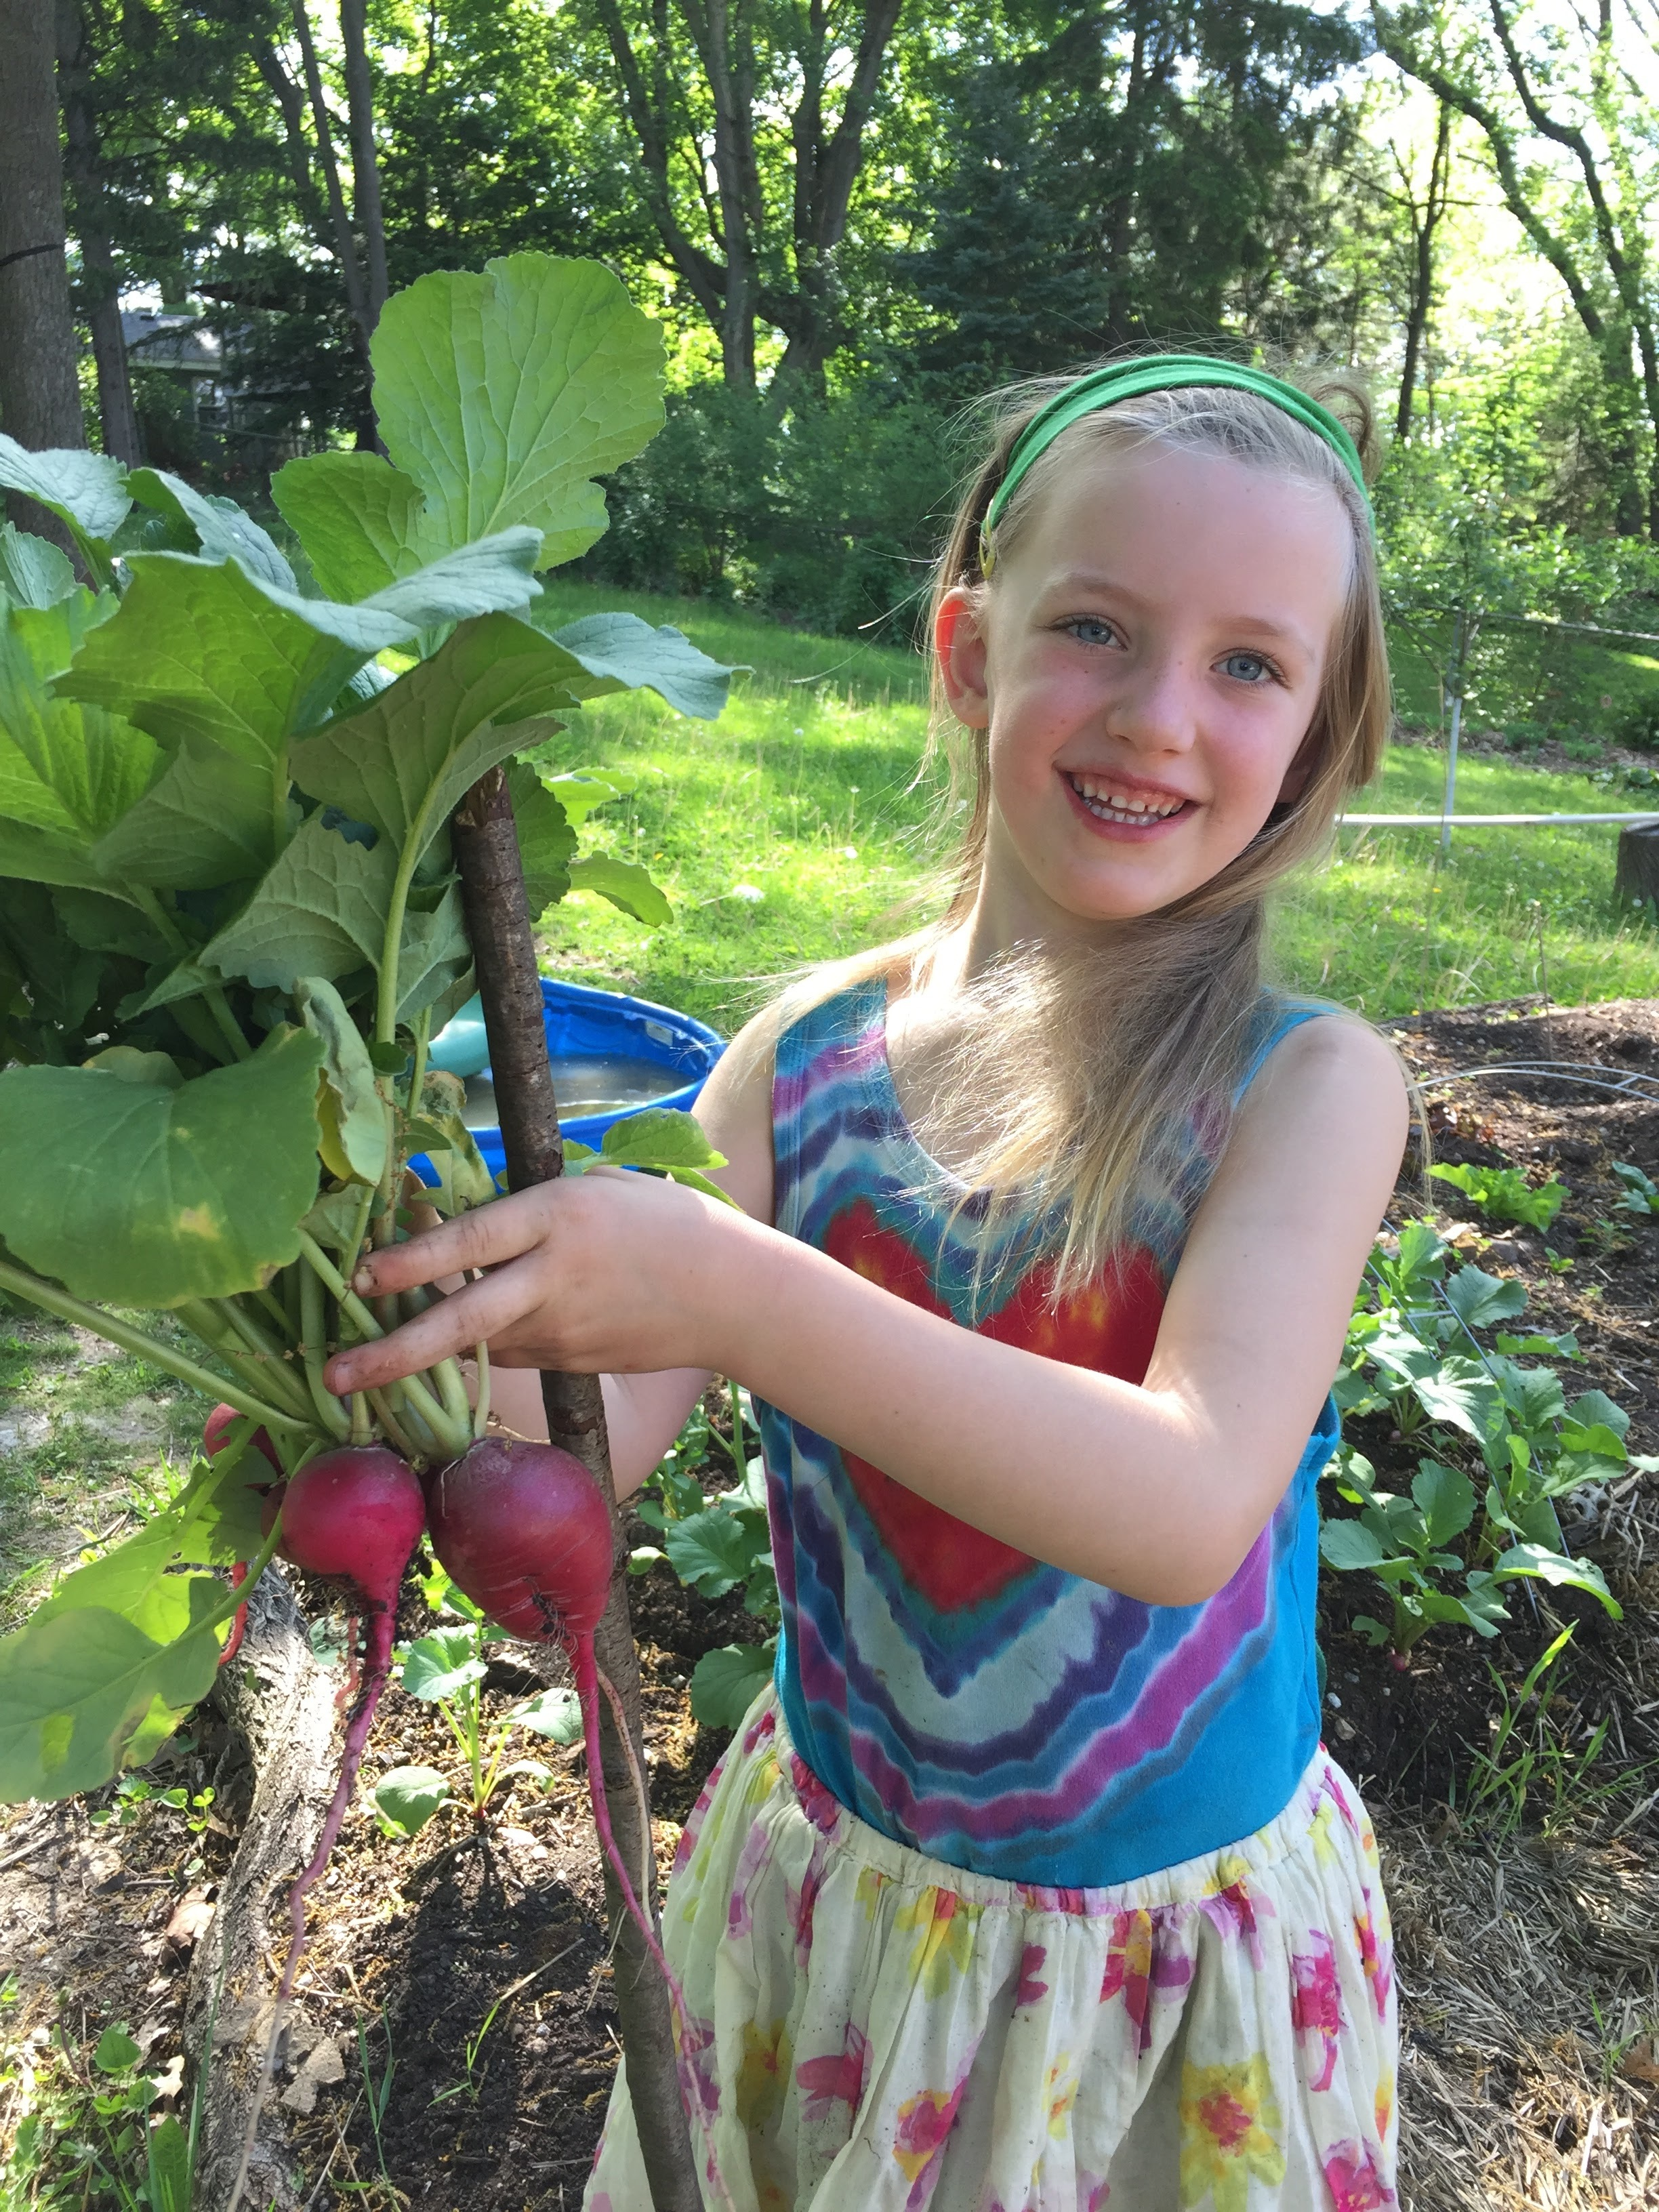 Five year old smiles when she's harvesting beets for dinner